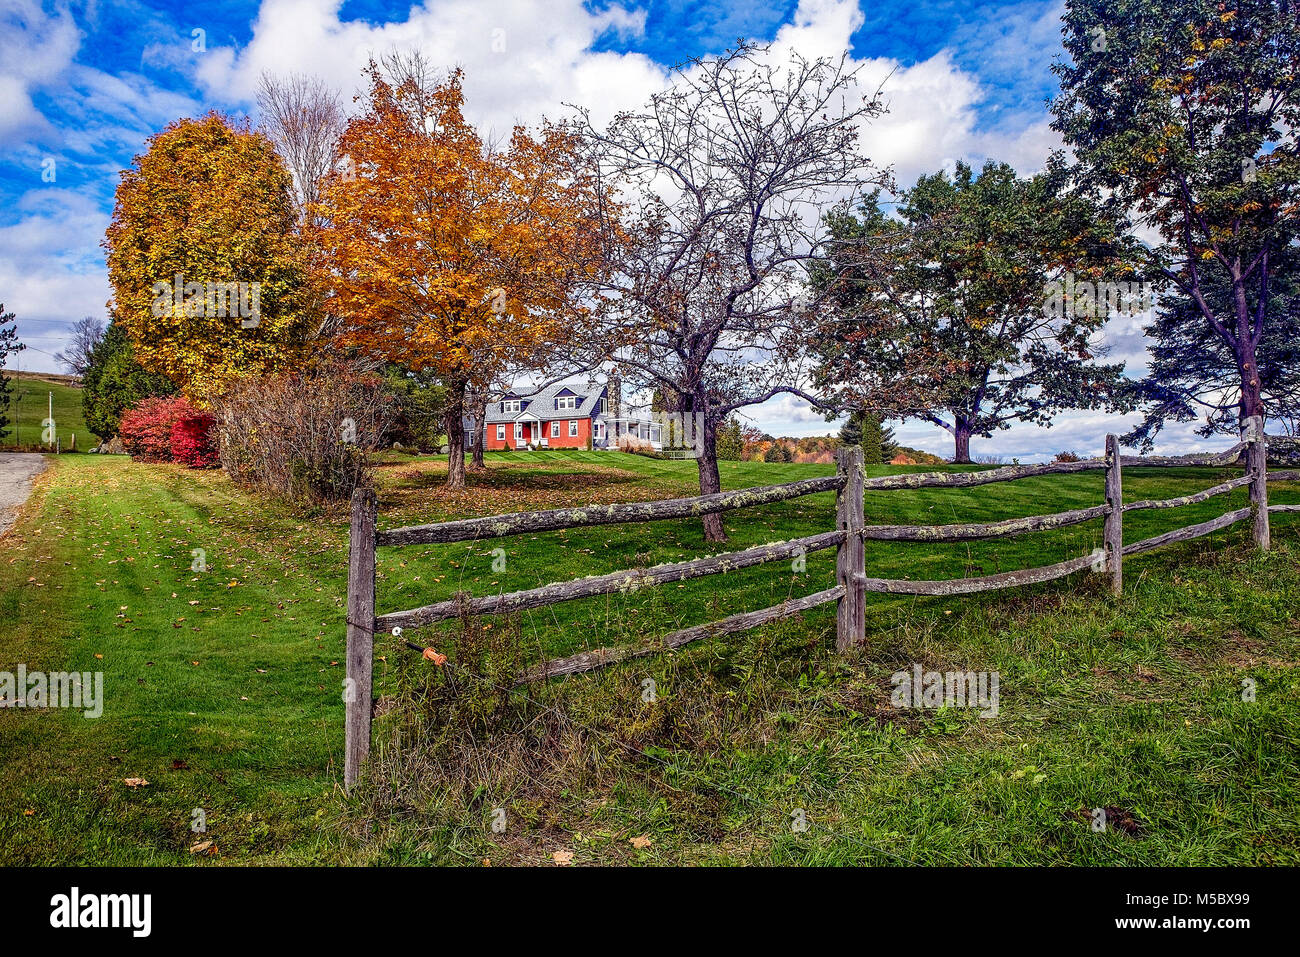 Red brick Cape style home with a mossy split-rail fence, green lawn and colorful Autumn foliage in Franconia, NH, - Stock Image